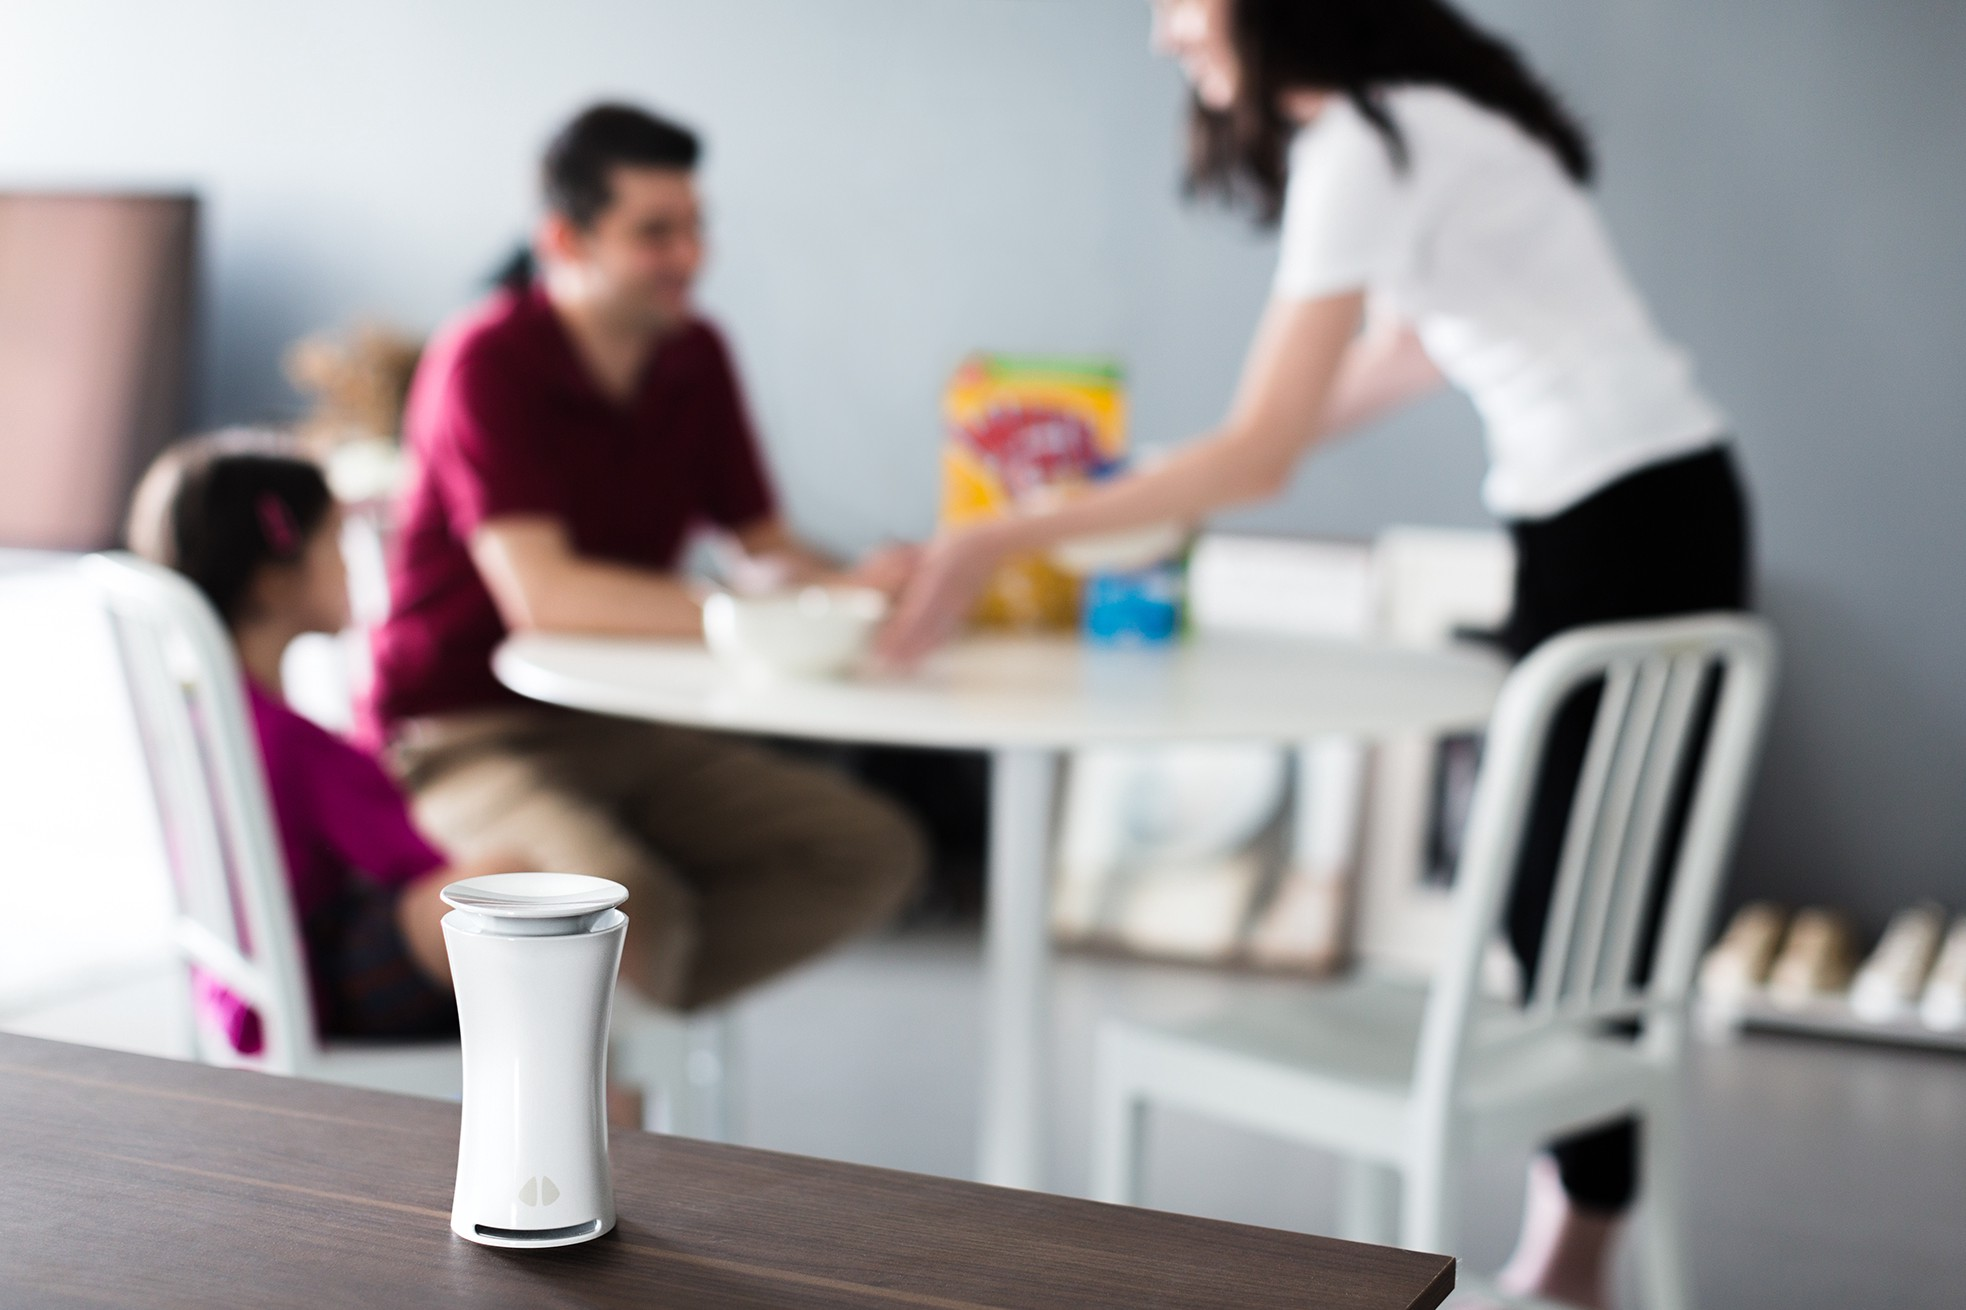 uHoo quietly monitors air quality within a home. | Source: Uhoo air site